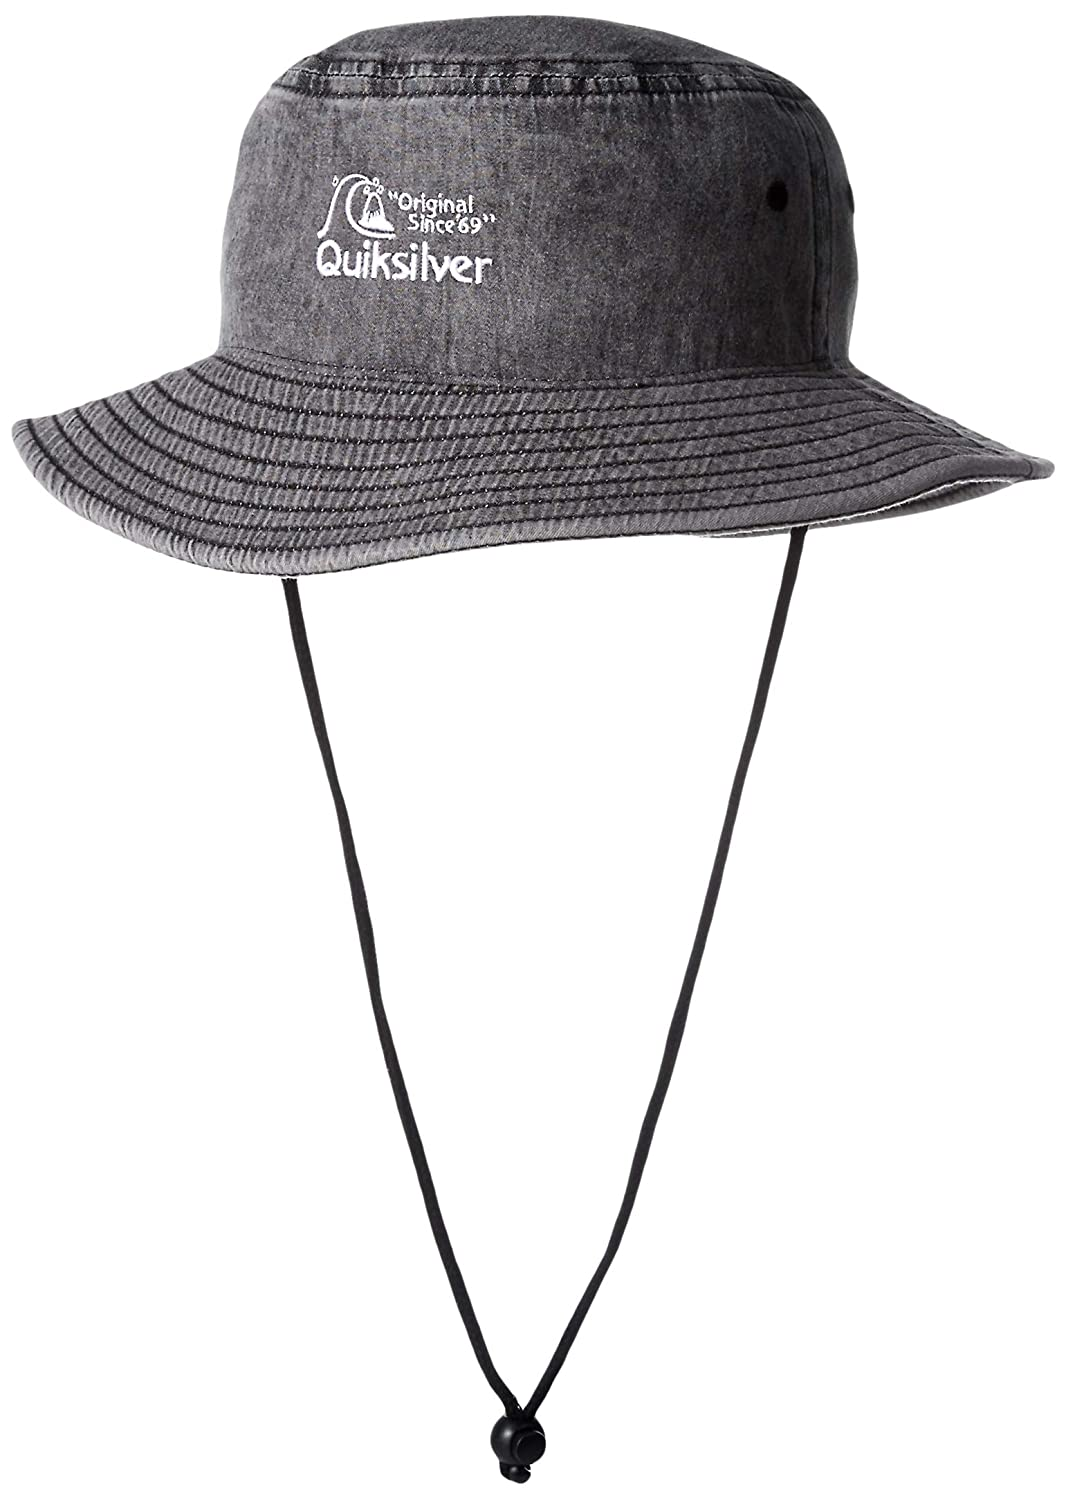 Quiksilver Mens Bucketeer Sun Protection Hat